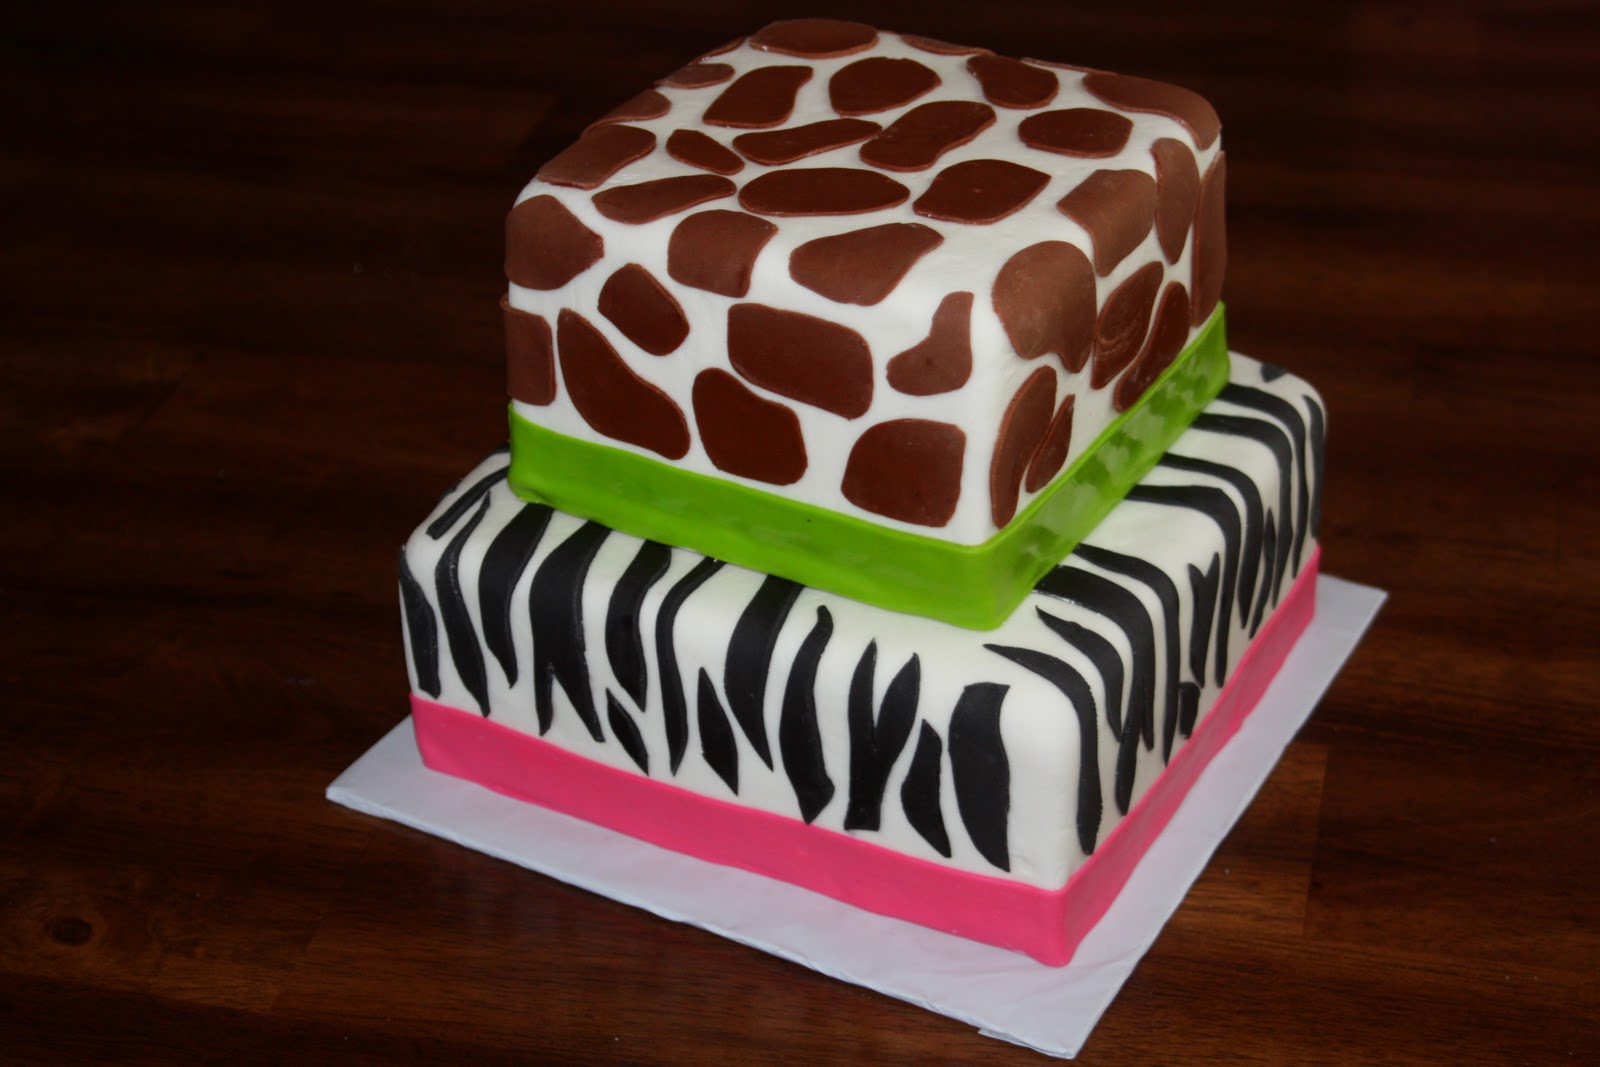 Animal Print Cake Pictures : Sugar Rush Cake: Animal Print Cake